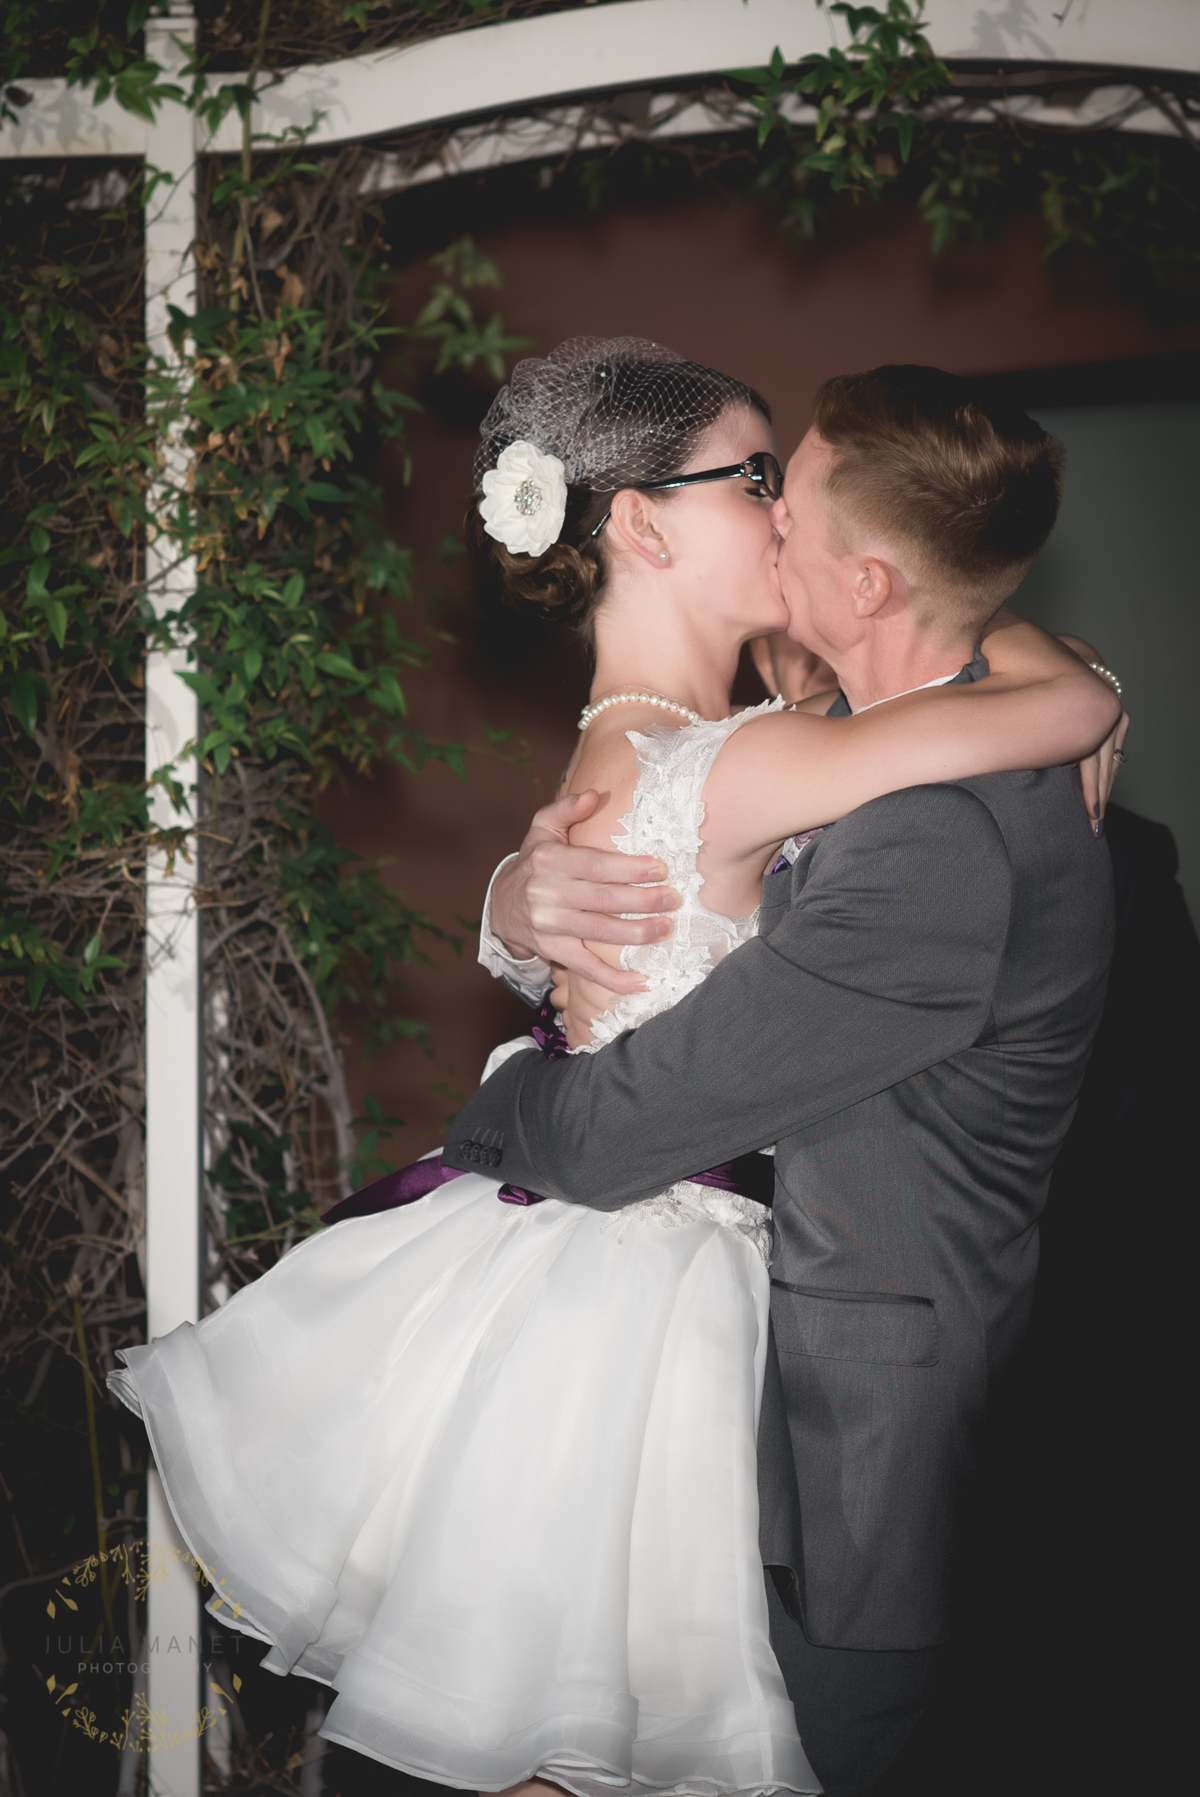 """You may kiss the bride!"" the officiant said. So, they kissed. Then kissed again. He lifts her up off her feet in exuberance. Someone in the crowd jokingly shouts, ""Oh come on, guys. Cut it out!"" And the bride, bless her heart, snaps, ""No!"" and kisses him again."